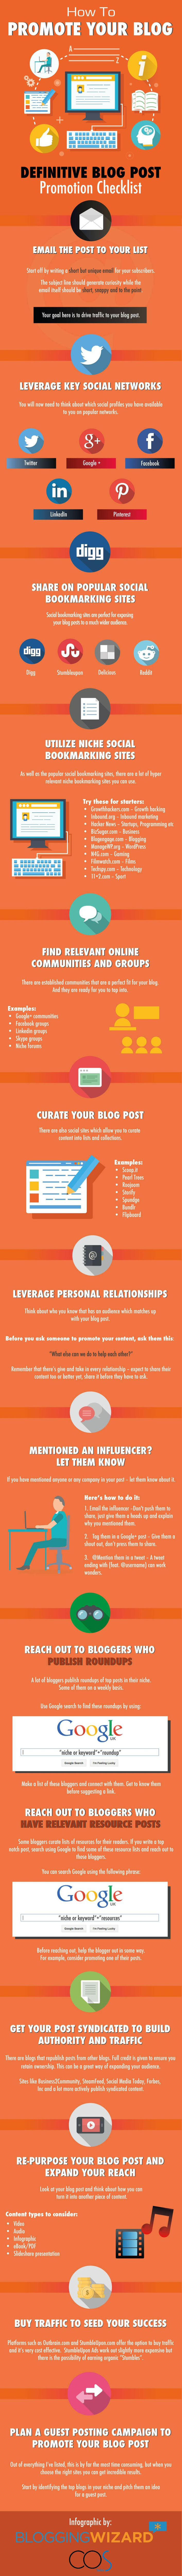 Insider Secrets To Know How To Promote Your Blog | Successful Blogging